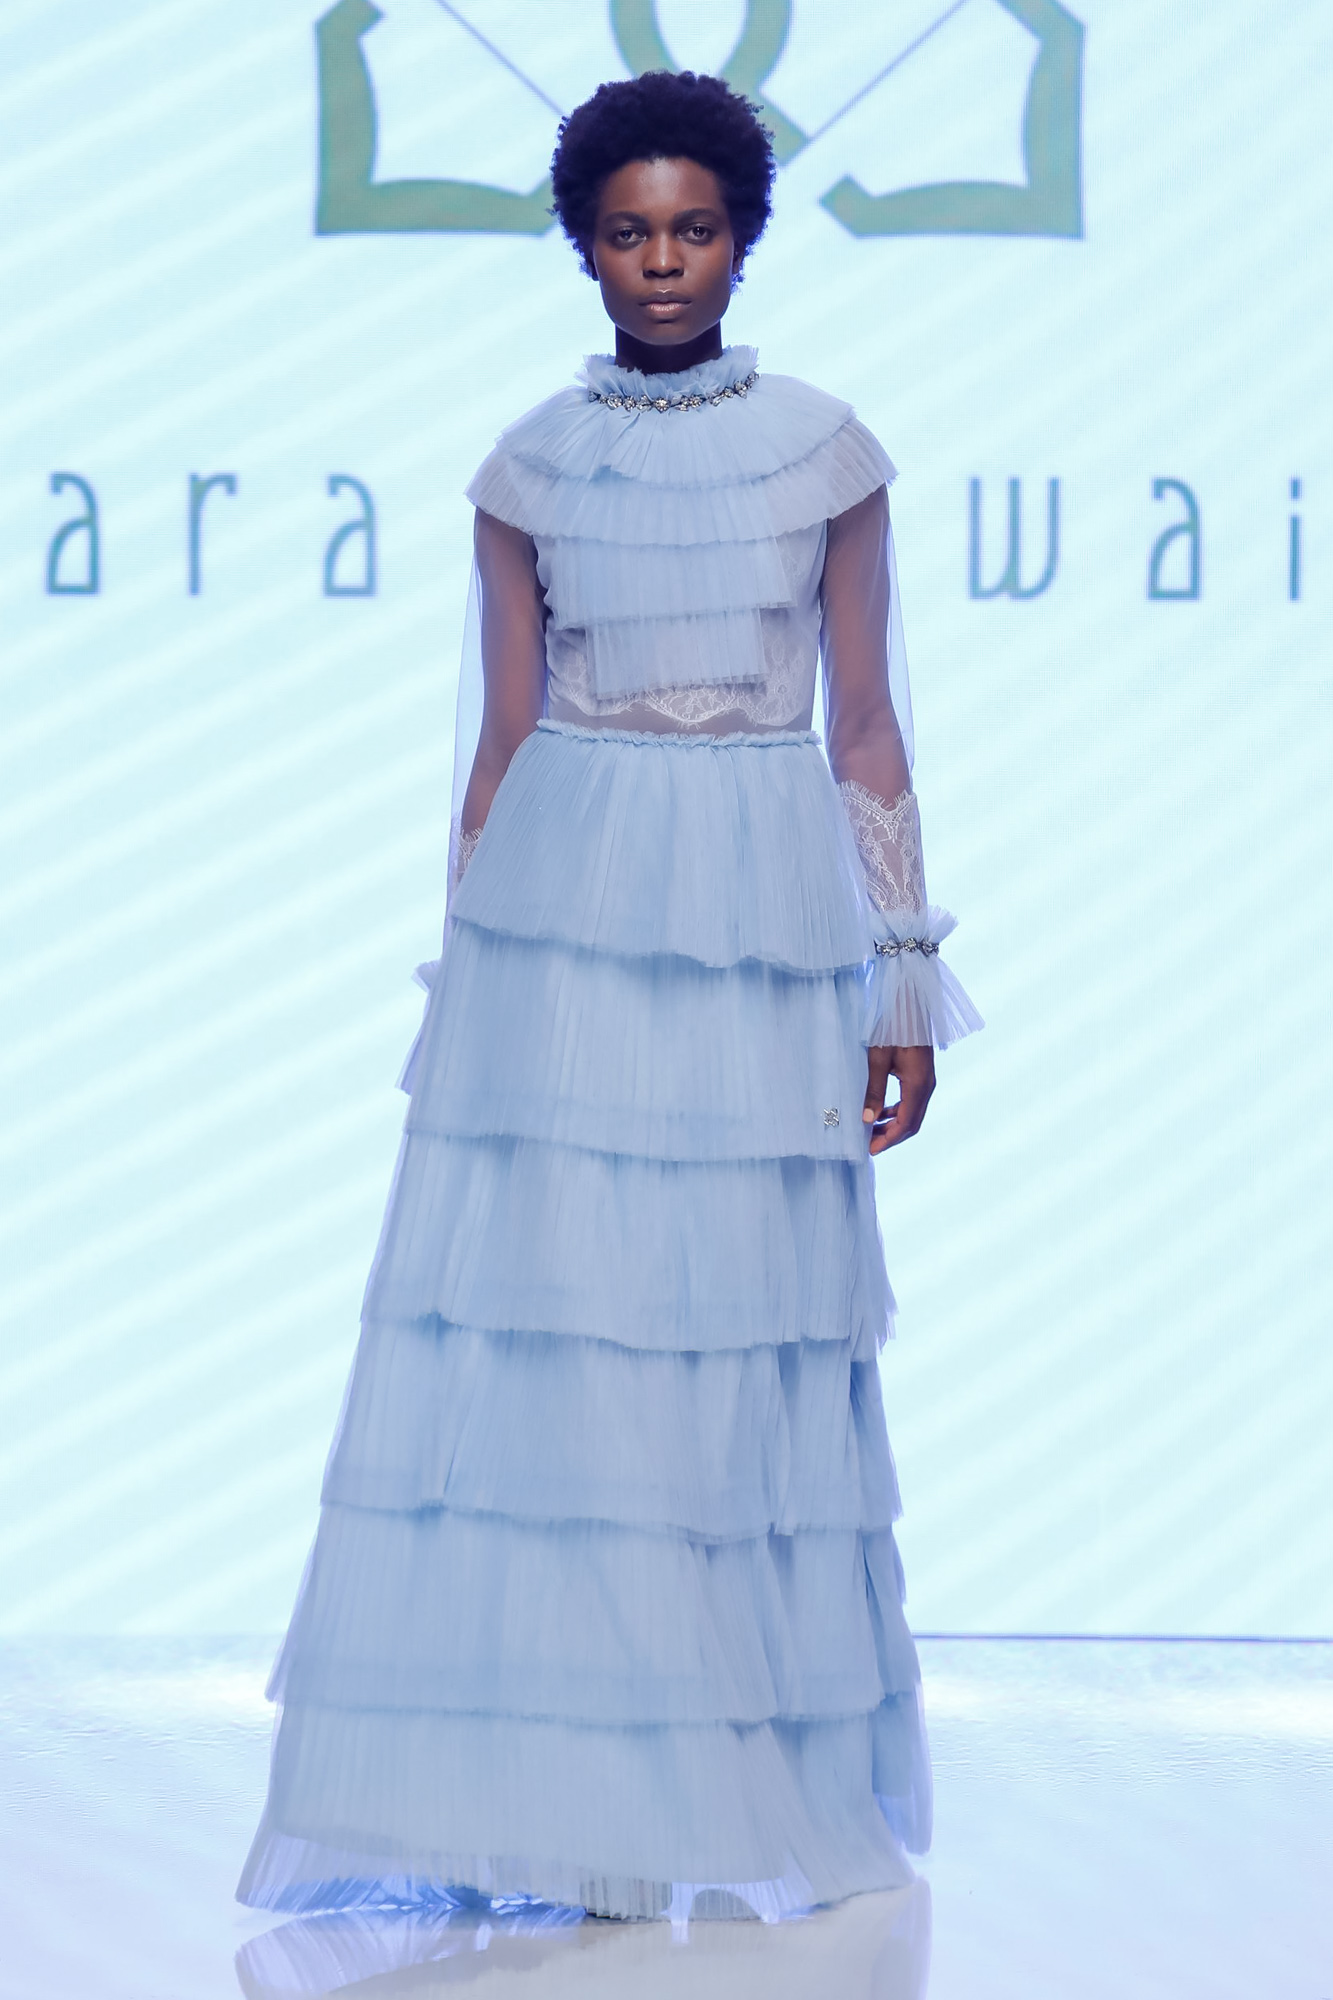 Sara Altwaim Resort 2020 Collection Arab Fashion Week in Dubai